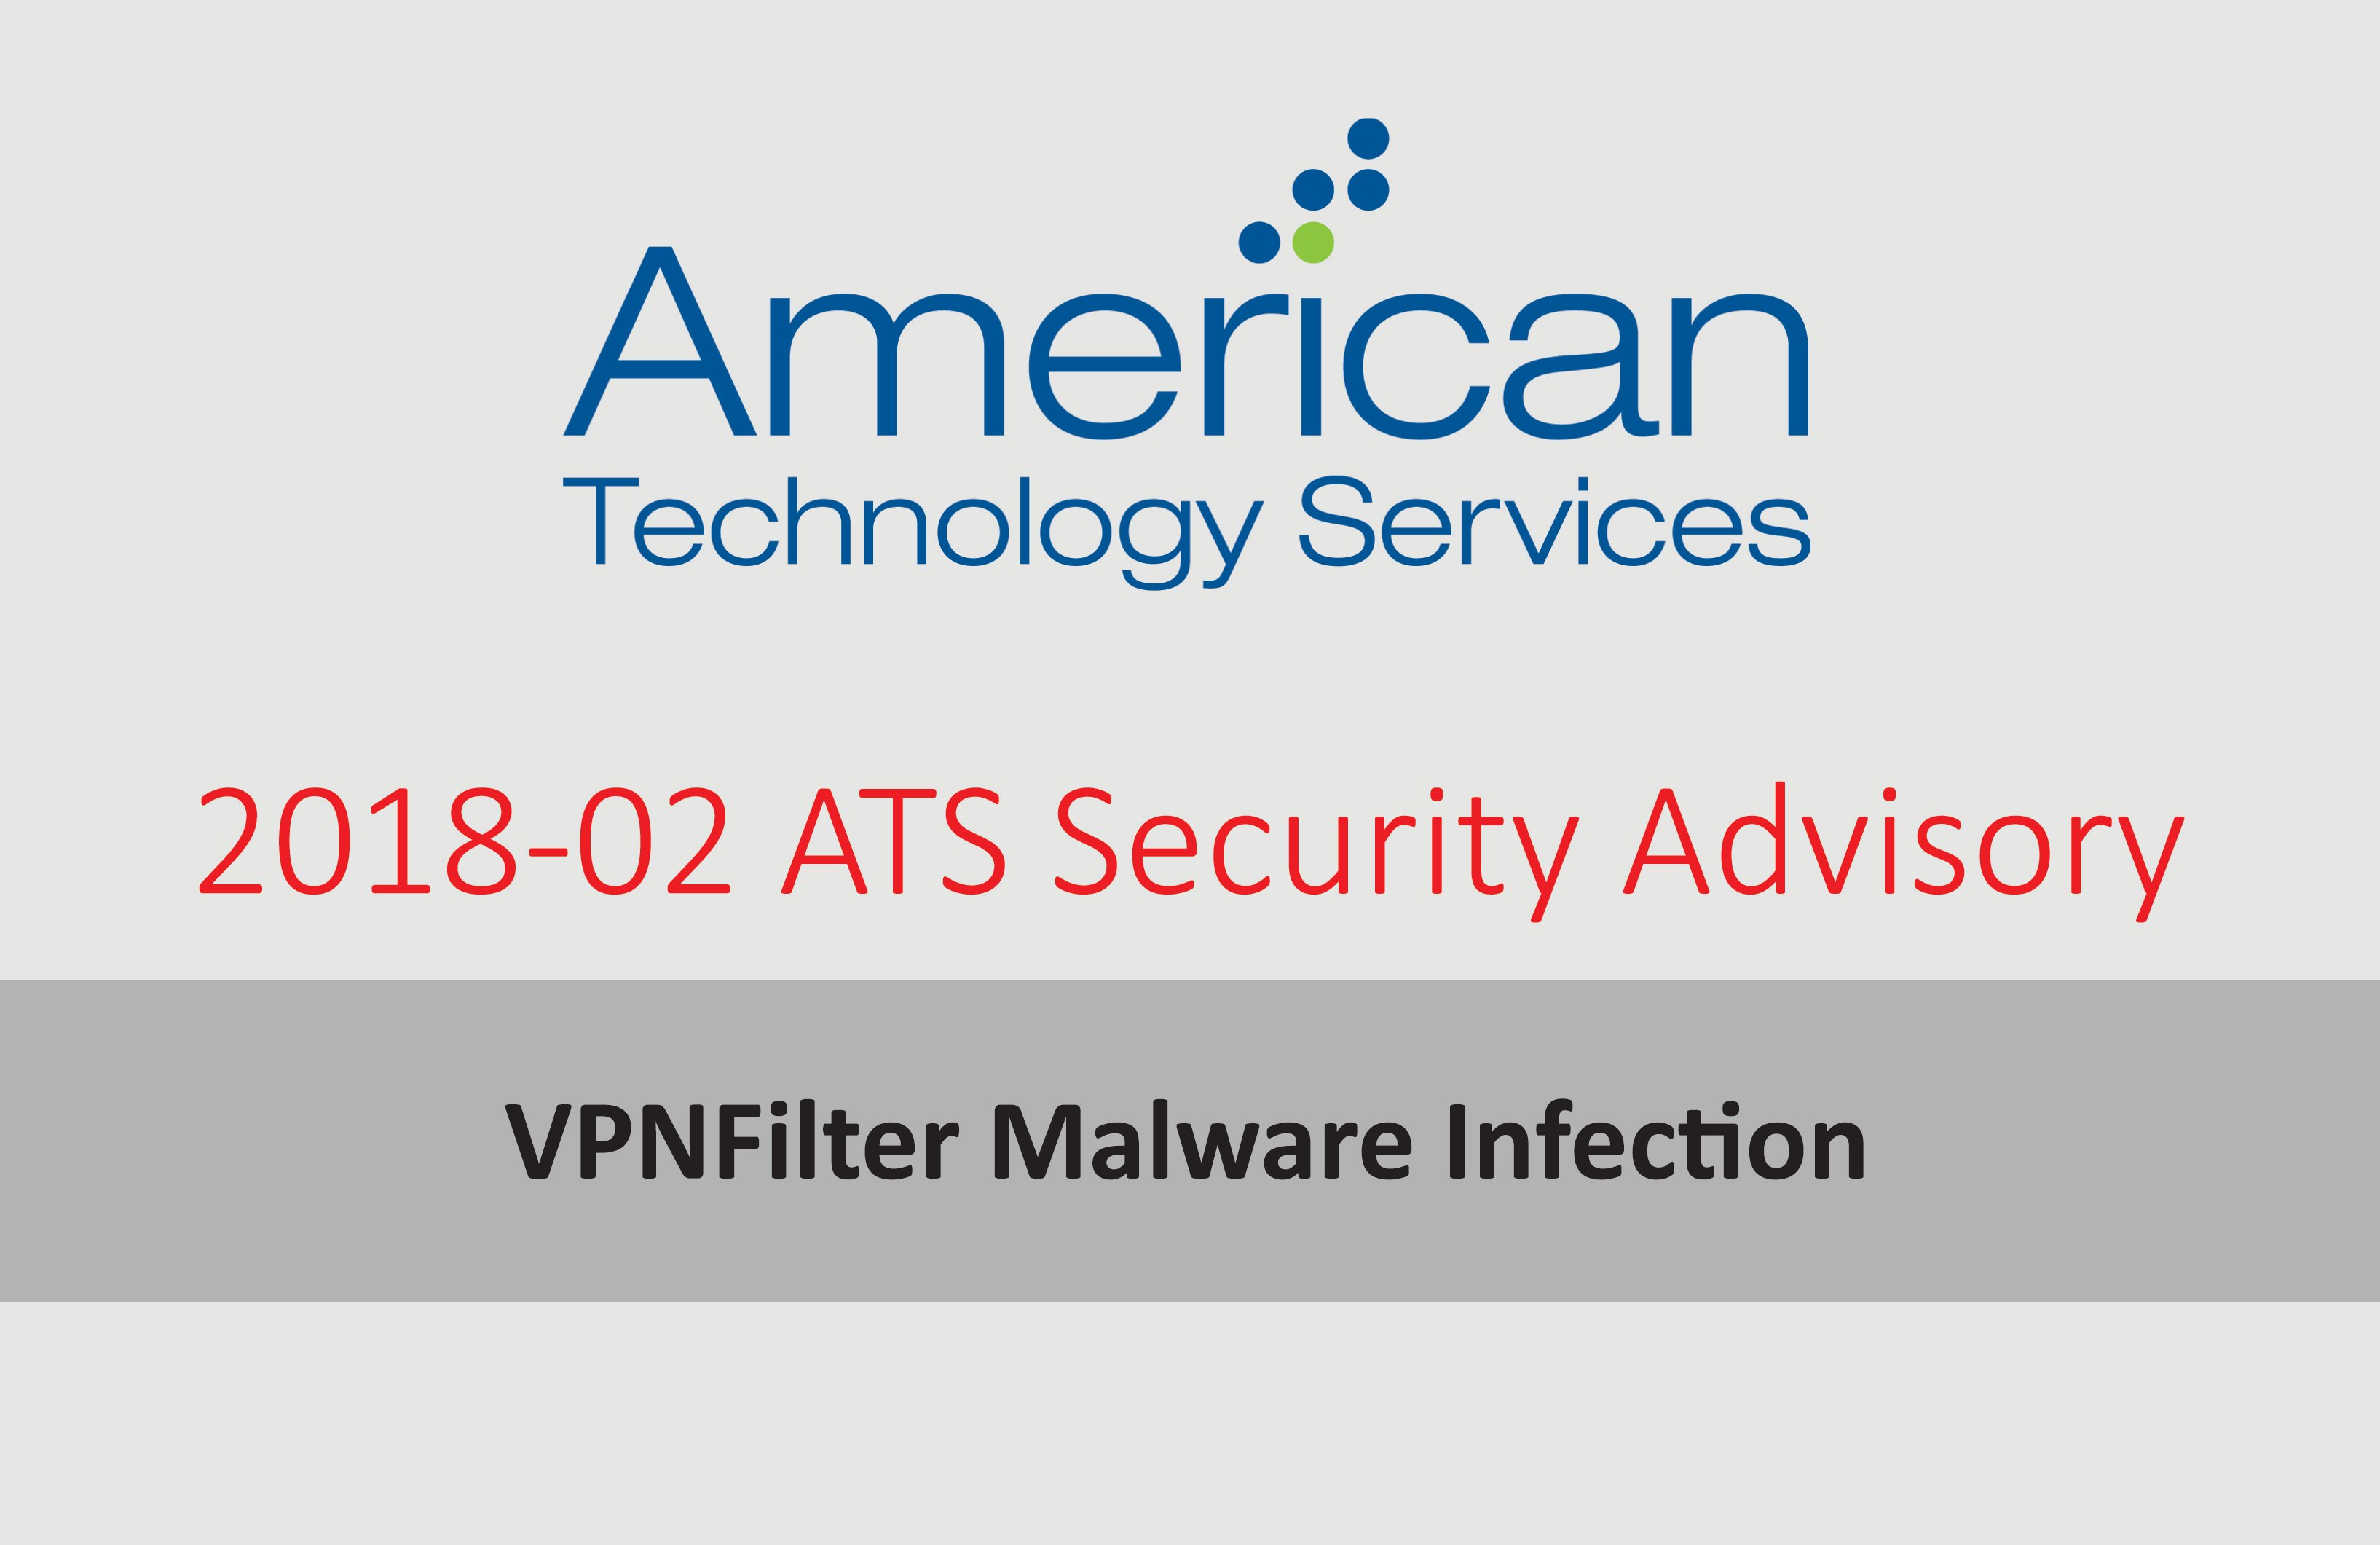 VPNFilter Malware Infection